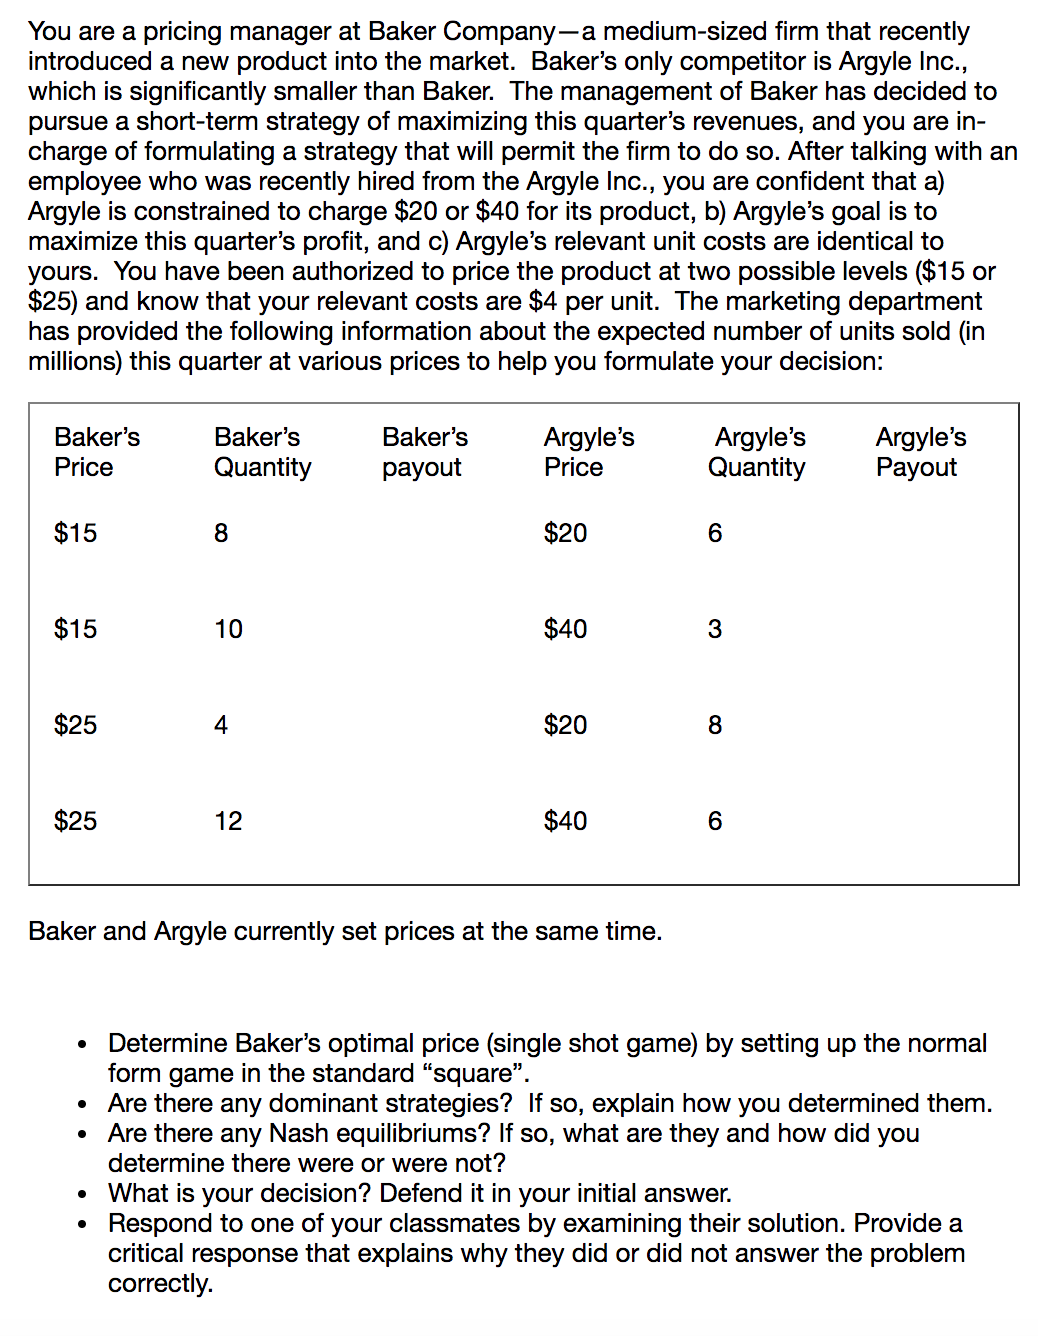 """You are a pricing manager at Baker Company-a medium-sized firm that recently introduced a new product into the market. Baker's only competitor is Argyle Inc., which is significantly smaller than Baker. The managerment of Baker has decided to pursue a short-term strategy of maximizing this quarter's revenues, and you are in- charge of formulating a strategy that will permit the firm to do so. After talking with an employee who was recently hired from the Argyle Inc., you are confident that a) Argyle is constrained to charge $20 or $40 for its product, b) Argyle's goal is to maximize this quarter's profit, and c) Argyle's relevant unit costs are identical to yours. You have been authorized to price the product at two possible levels ($15 or $25) and know that your relevant costs are $4 per unit. The marketing department has provided the following information about the expected number of units sold (in millions) this quarter at various prices to help you formulate your decision: Argyle's Quantity Baker's Argyle's Payout Baker's Baker's Argyle's Price Quantity Price payout $15 $20 $15 $40 10 3 $25 $20 $25 $40 12 Baker and Argyle currently set prices at the same time. Determine Baker's optimal price (single shot game) by setting up the normal form game in the standard """"square"""". Are there any dominant strategies? If so, explain how you determined them. Are there any Nash equilibriums? If so, what are determine there were or were not? they and how did you What is your decision? Defend it in your initial answer. Respond to one of your classmates by examining their solution. Provide a critical response that explains why they did or did not answer the problem correctly. $20"""